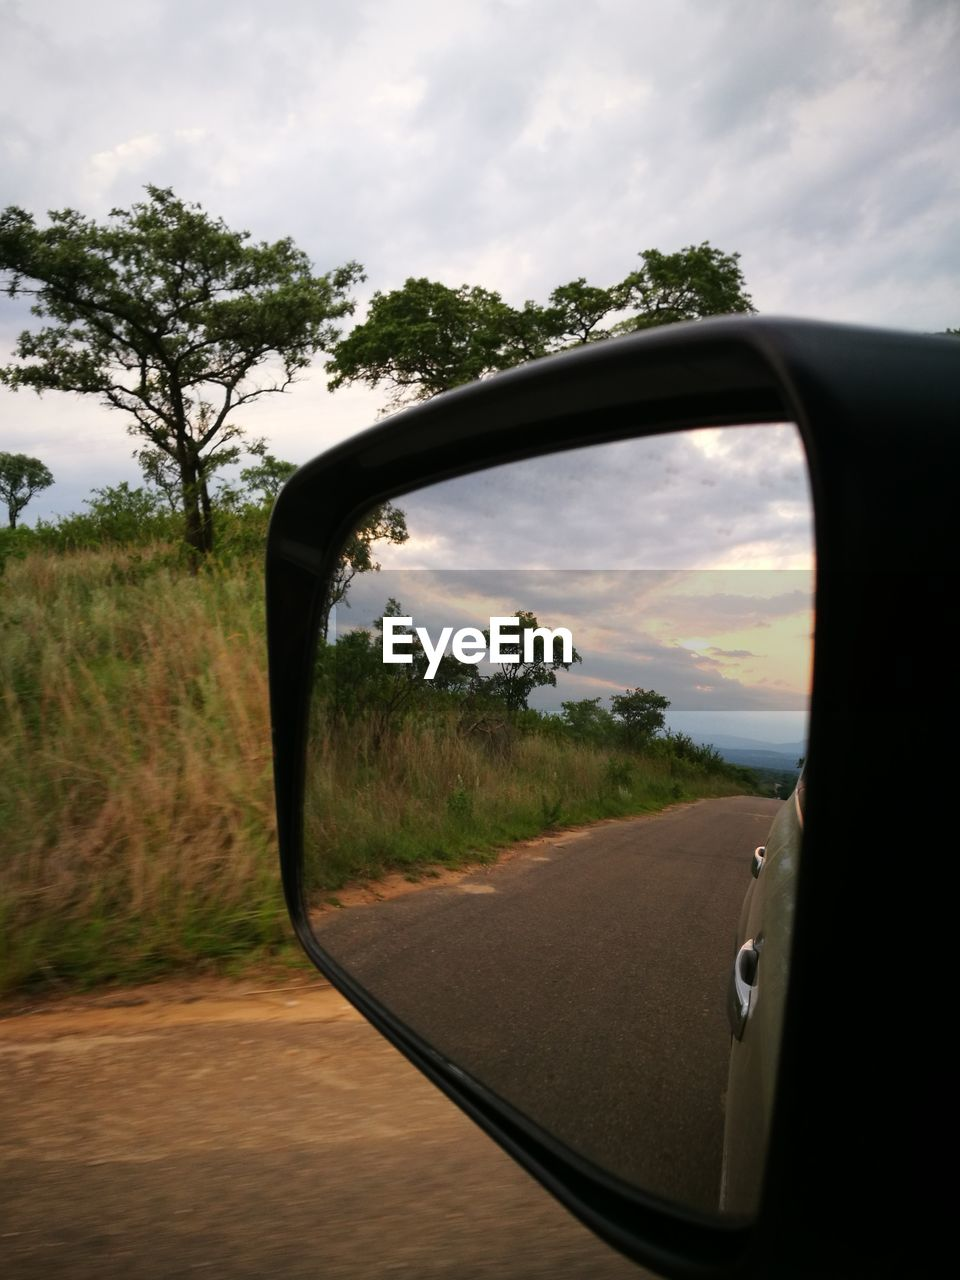 sky, side-view mirror, tree, cloud - sky, mode of transportation, land vehicle, car, nature, motor vehicle, transportation, sunset, plant, reflection, land, beauty in nature, no people, scenics - nature, glass - material, field, landscape, outdoors, vehicle mirror, road trip